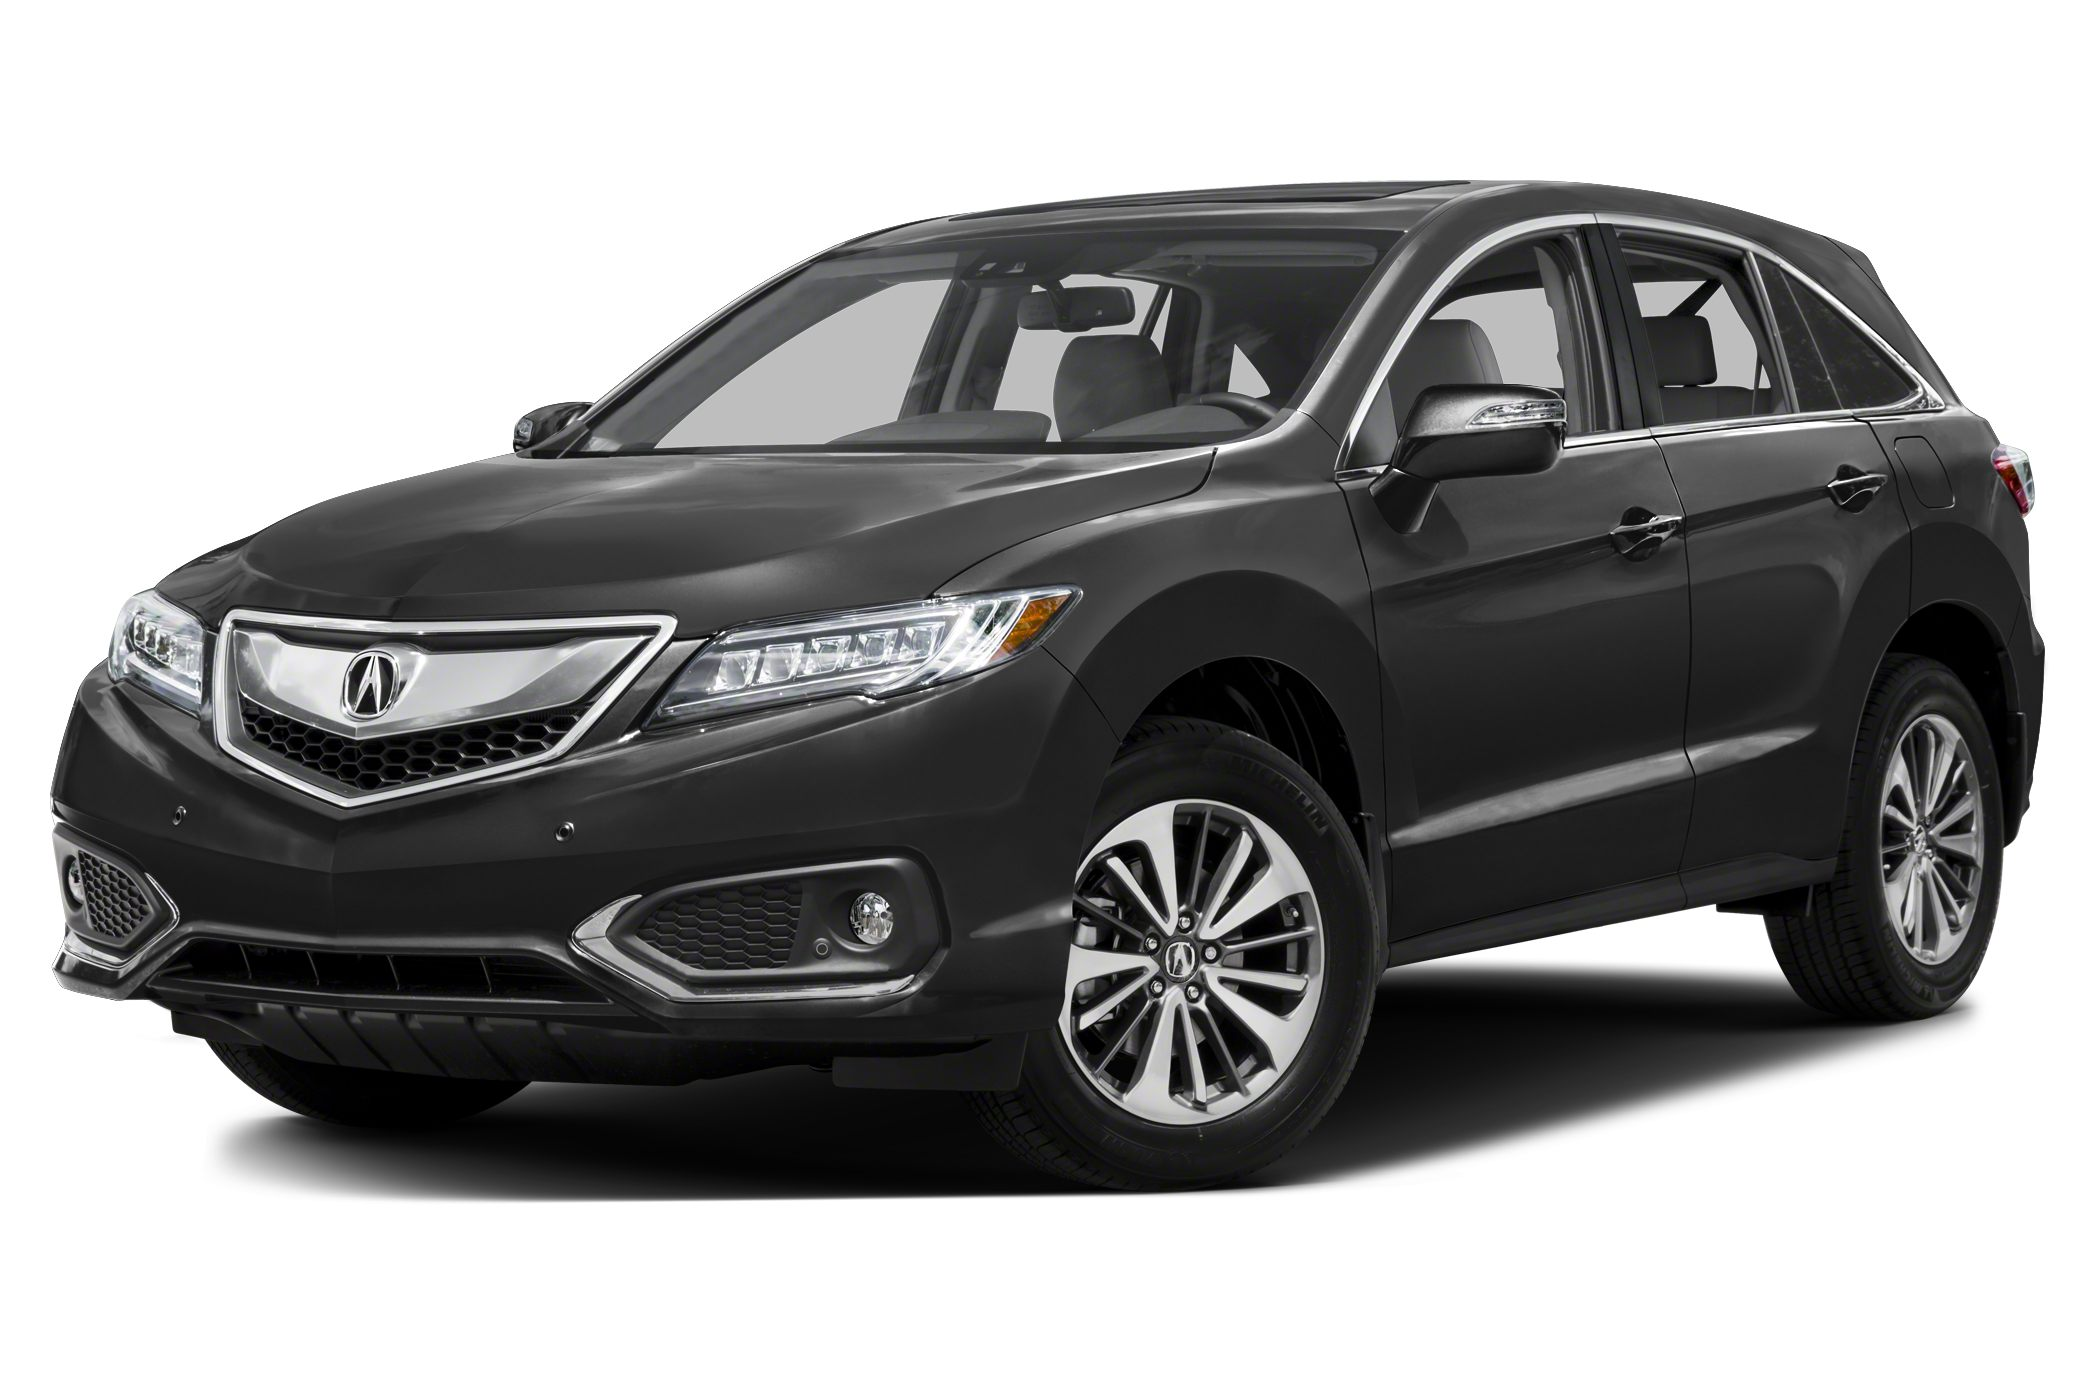 2016 Acura RDX AcuraWatch Plus Miles 99Color Crystal Black Pearl Stock A002554 VIN 5J8TB4H38